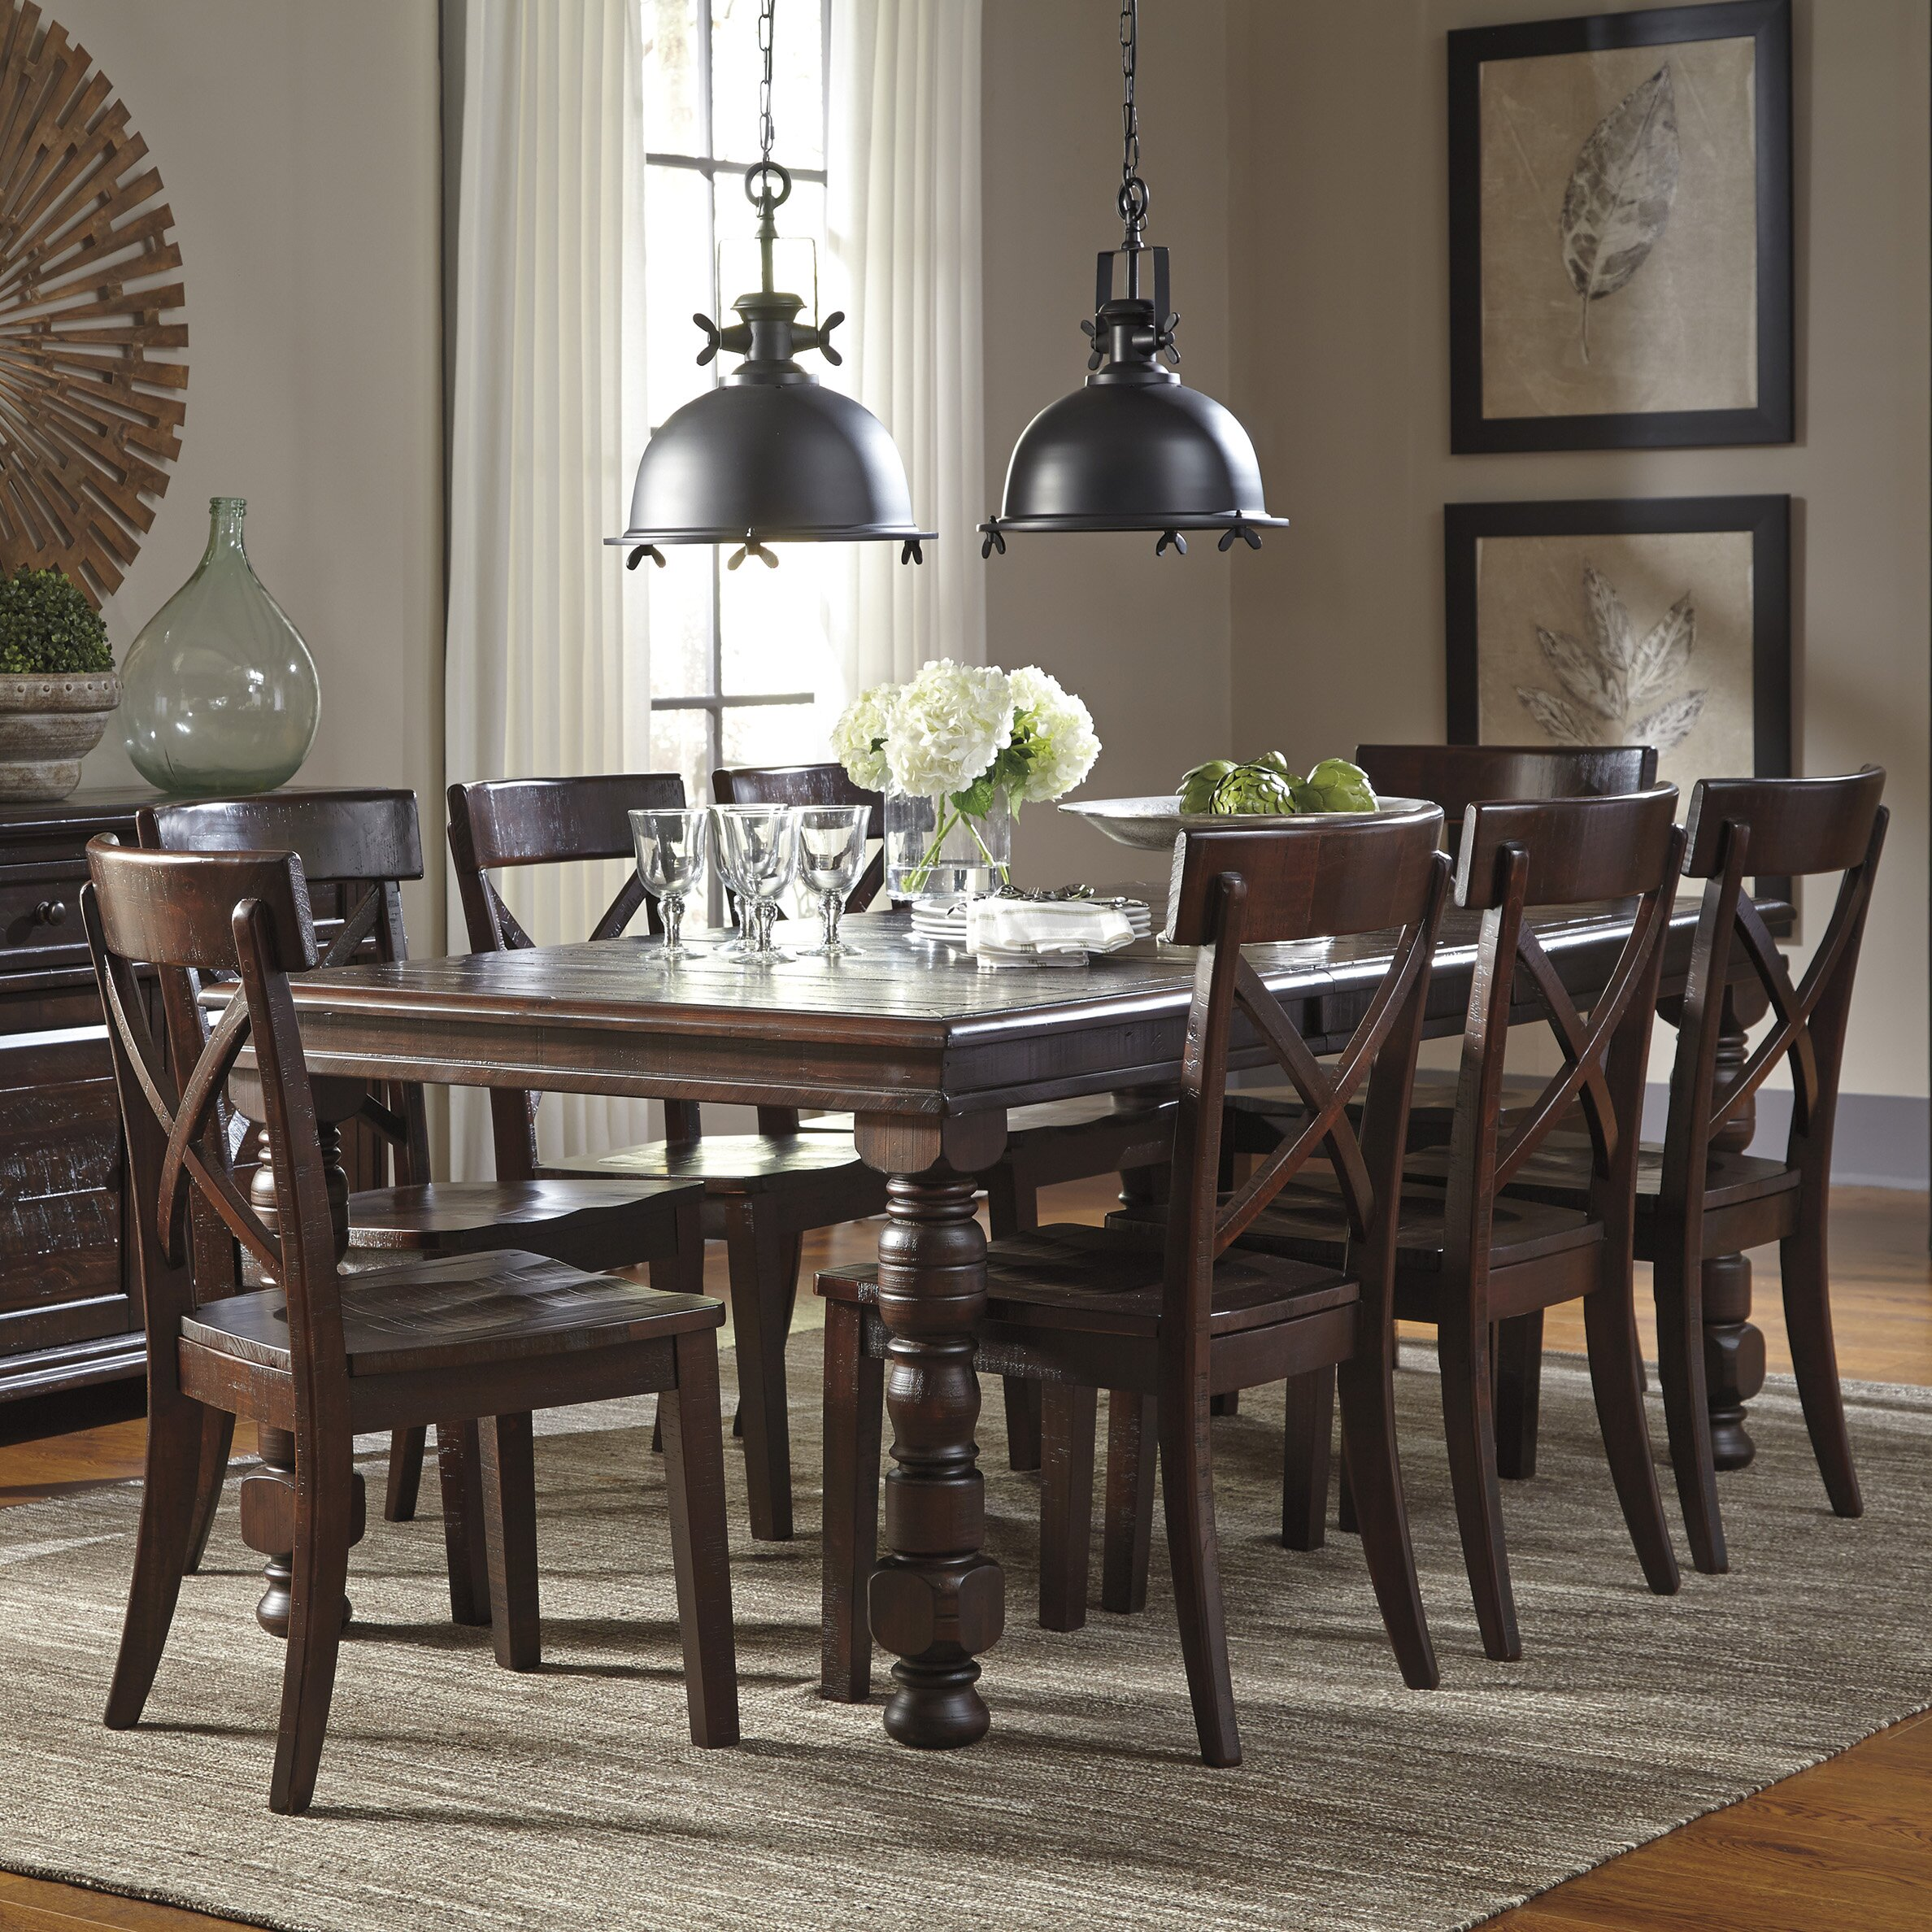 Kitchen Table Sets Under 300 Signature Design By Ashley 5 Piece Dining Set Reviews Wayfair